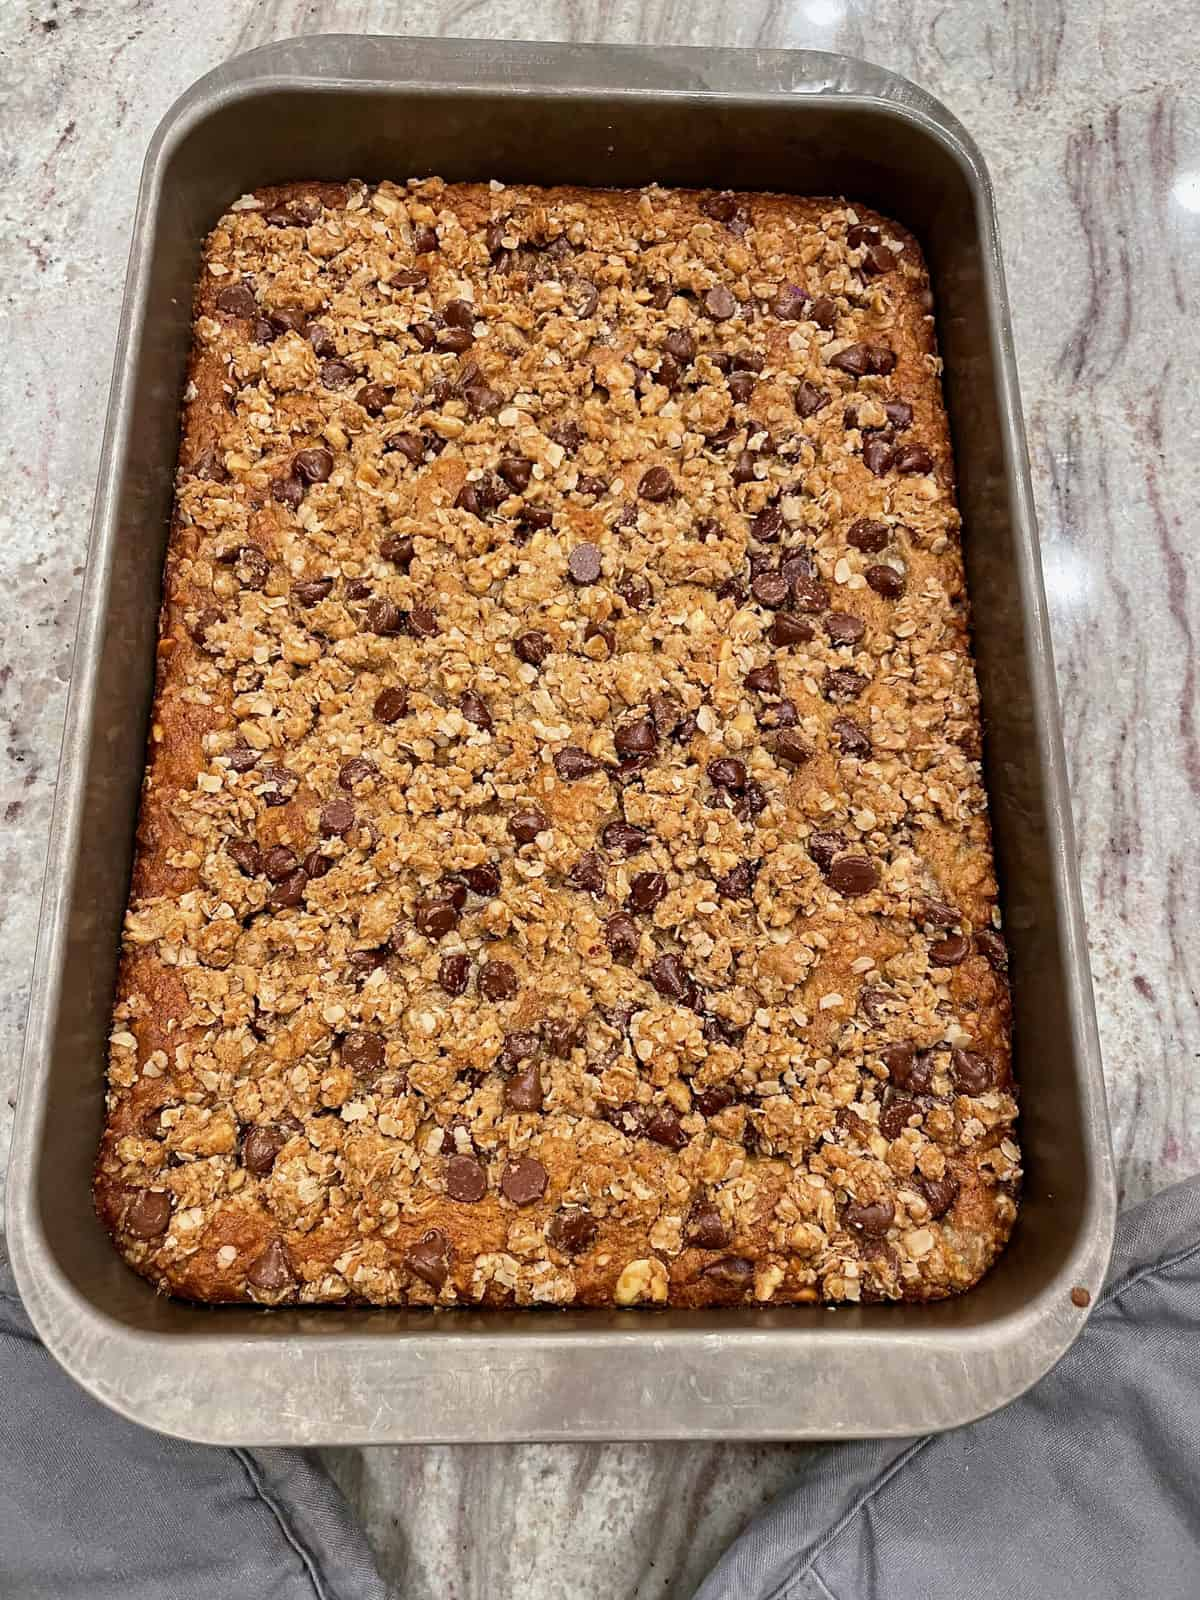 Peanut Butter Oatmeal Chocolate Chip Banana Bread Bars by The BakerMama